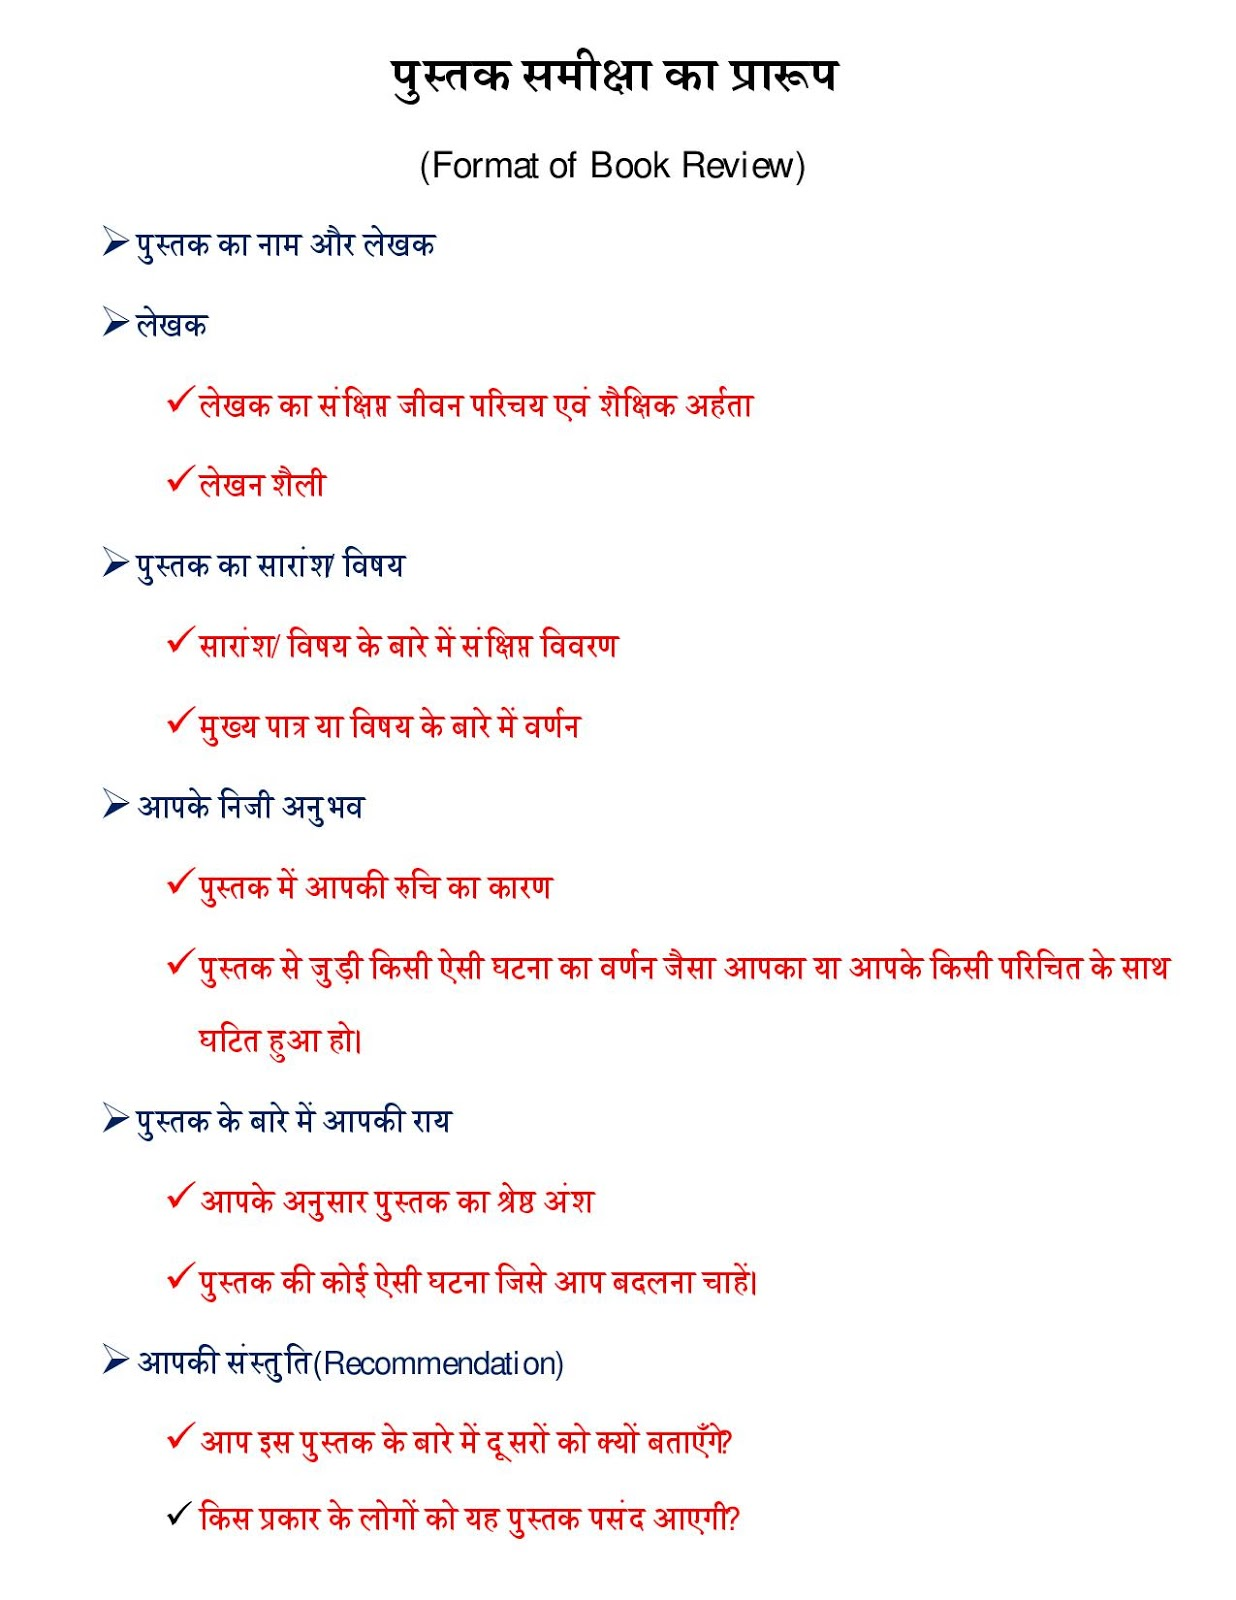 how to write a book review format in hindi